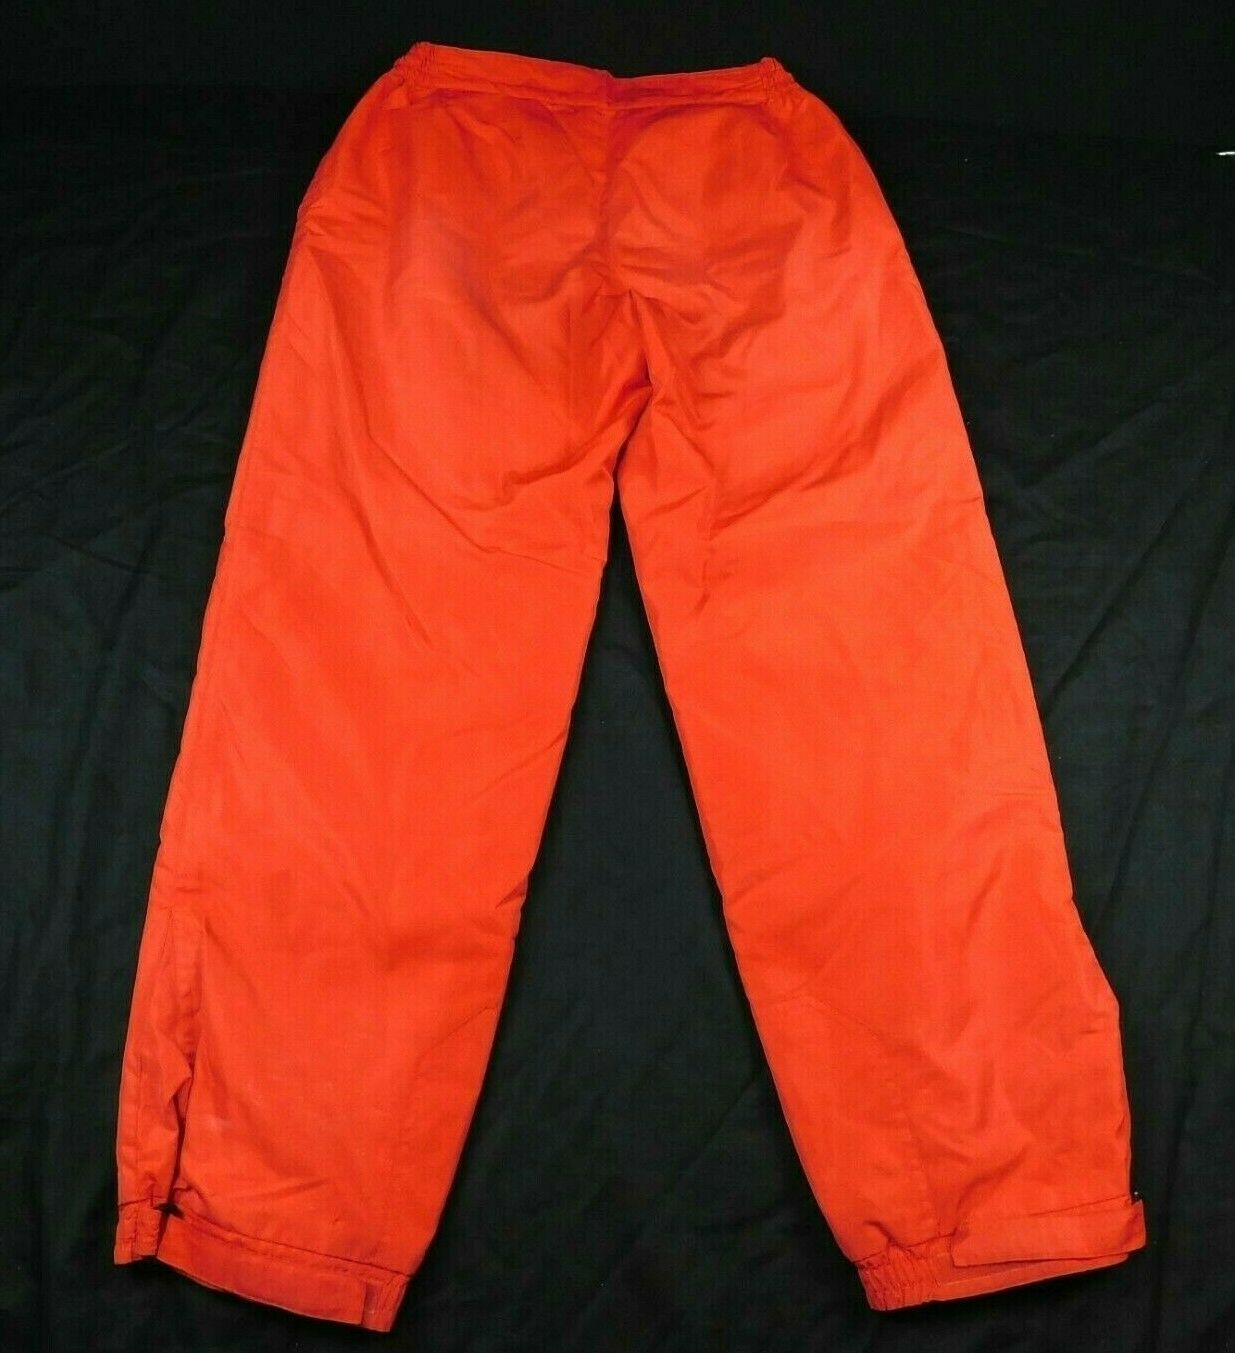 Tenson AirPush Red Ski Pants Sz XL W 34-38 L 33 Elastic Waist Draw String image 3